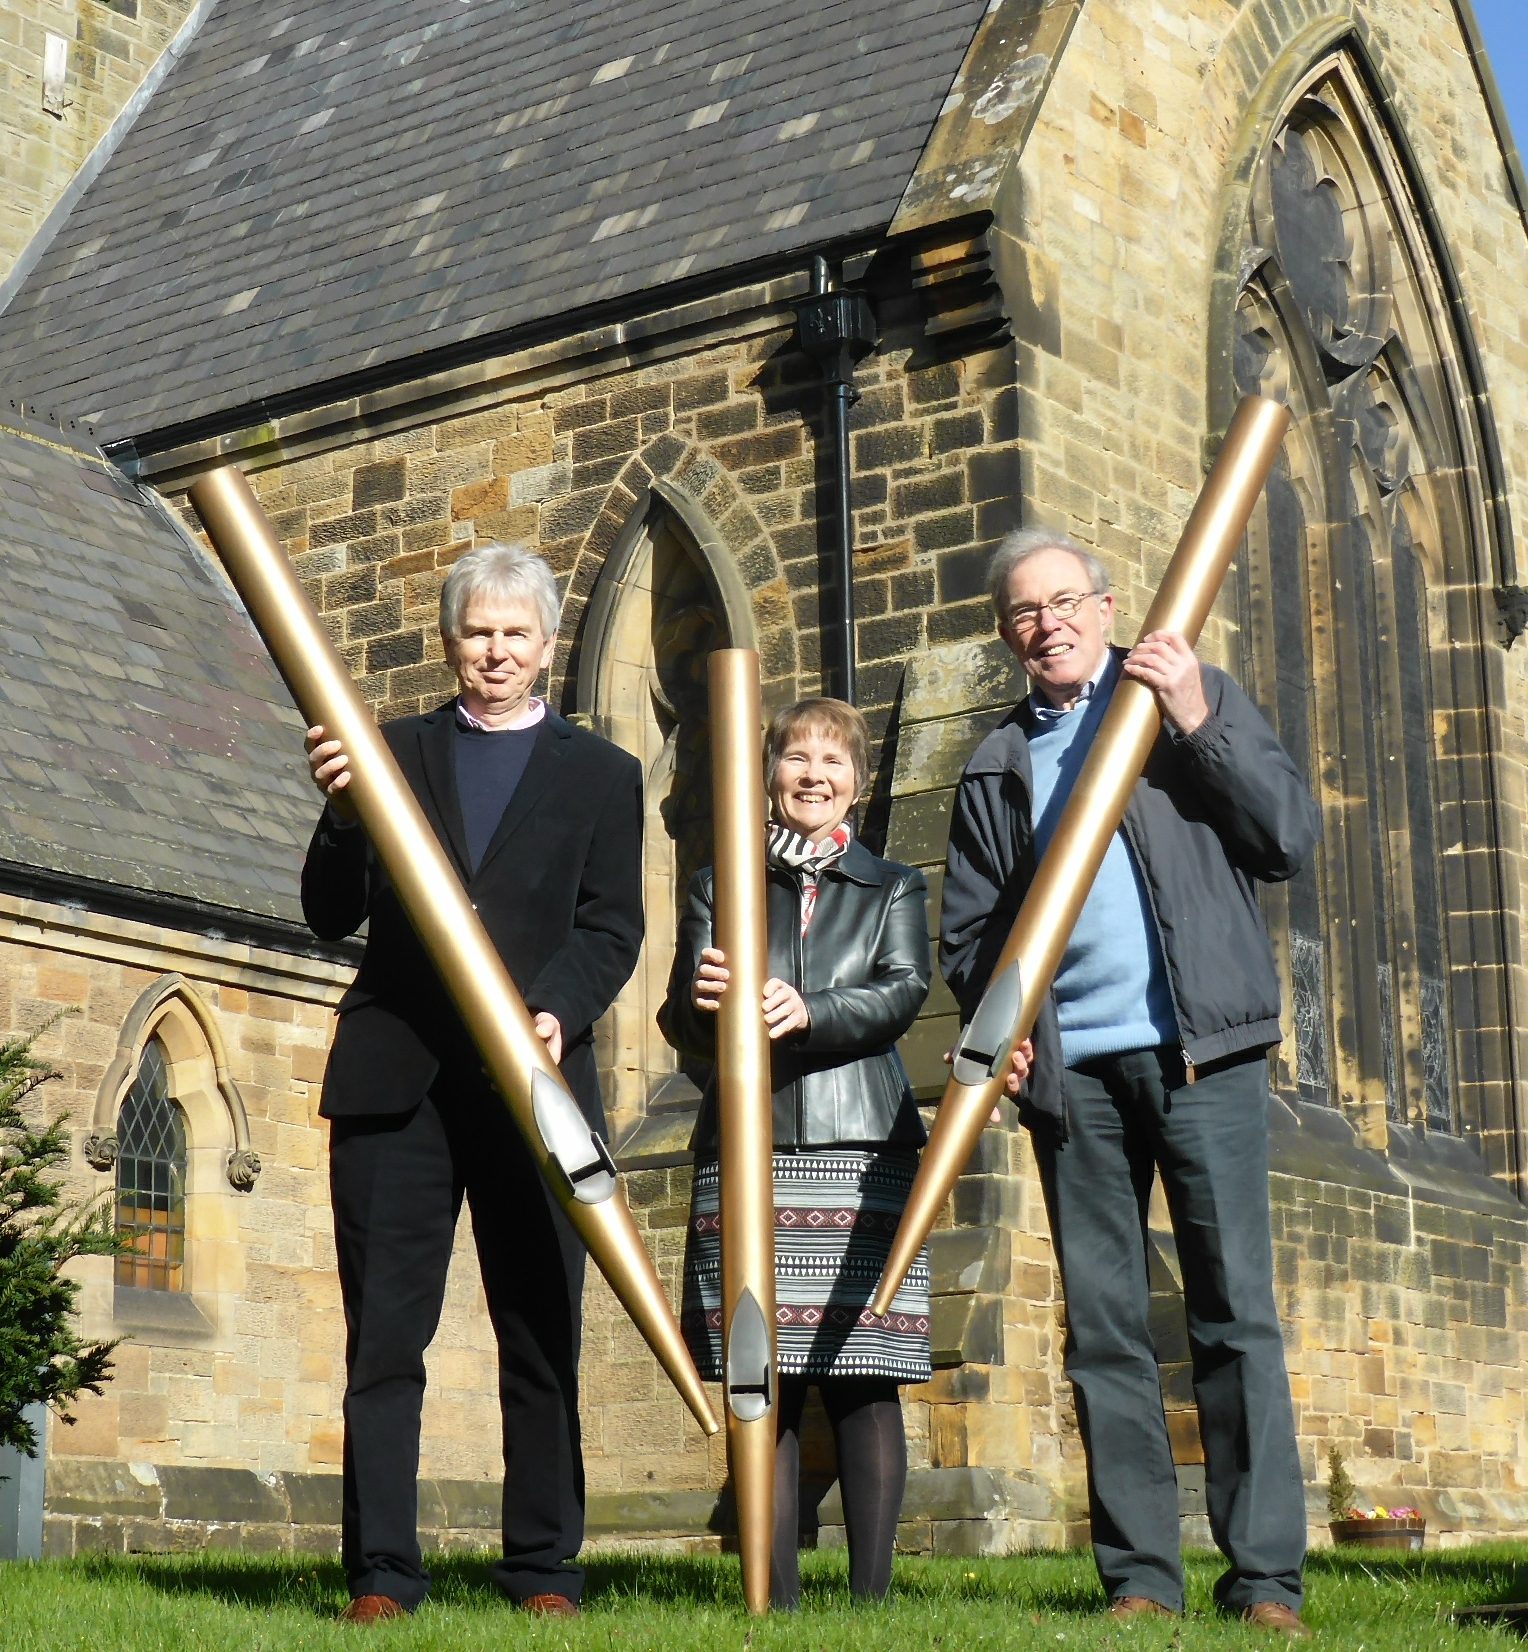 Outside Christ Church in Great Ayton (left to right) churchwardens Martin Simmons and Vicki Nath and treasurer Ken Taylor, who were instrumental in securing the funding